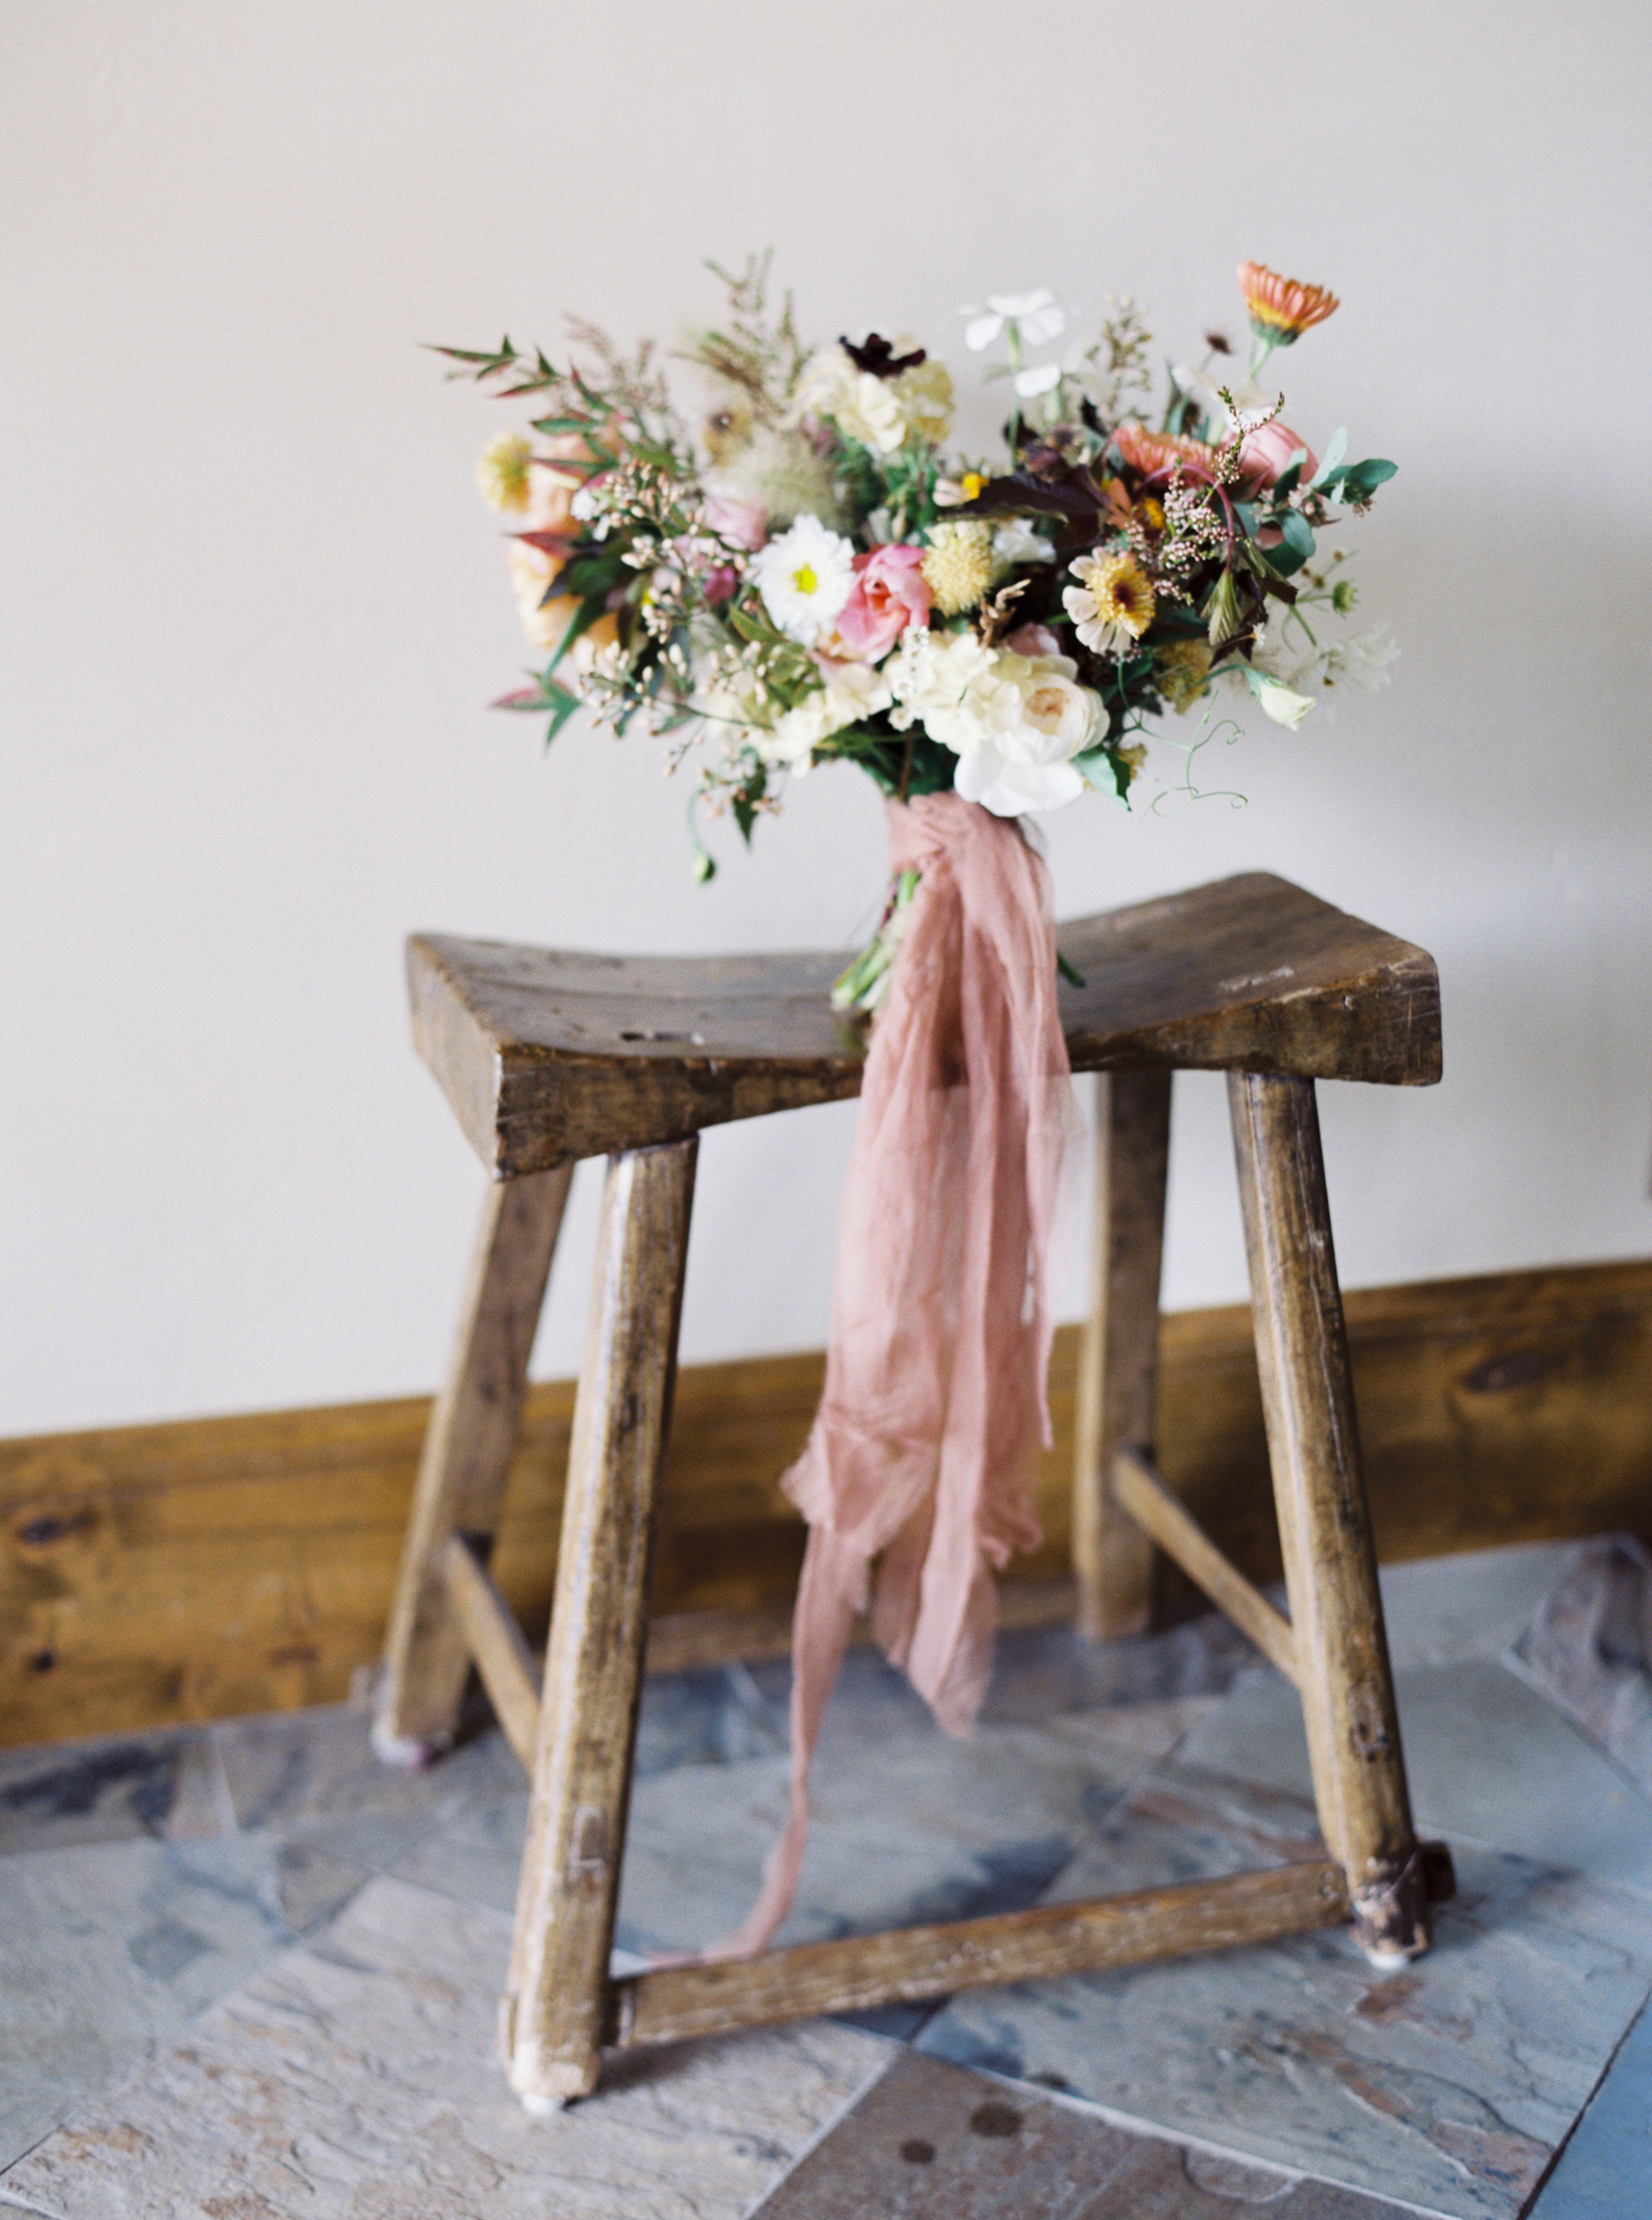 pink, white, coffee, and walnut tones floral arrangement